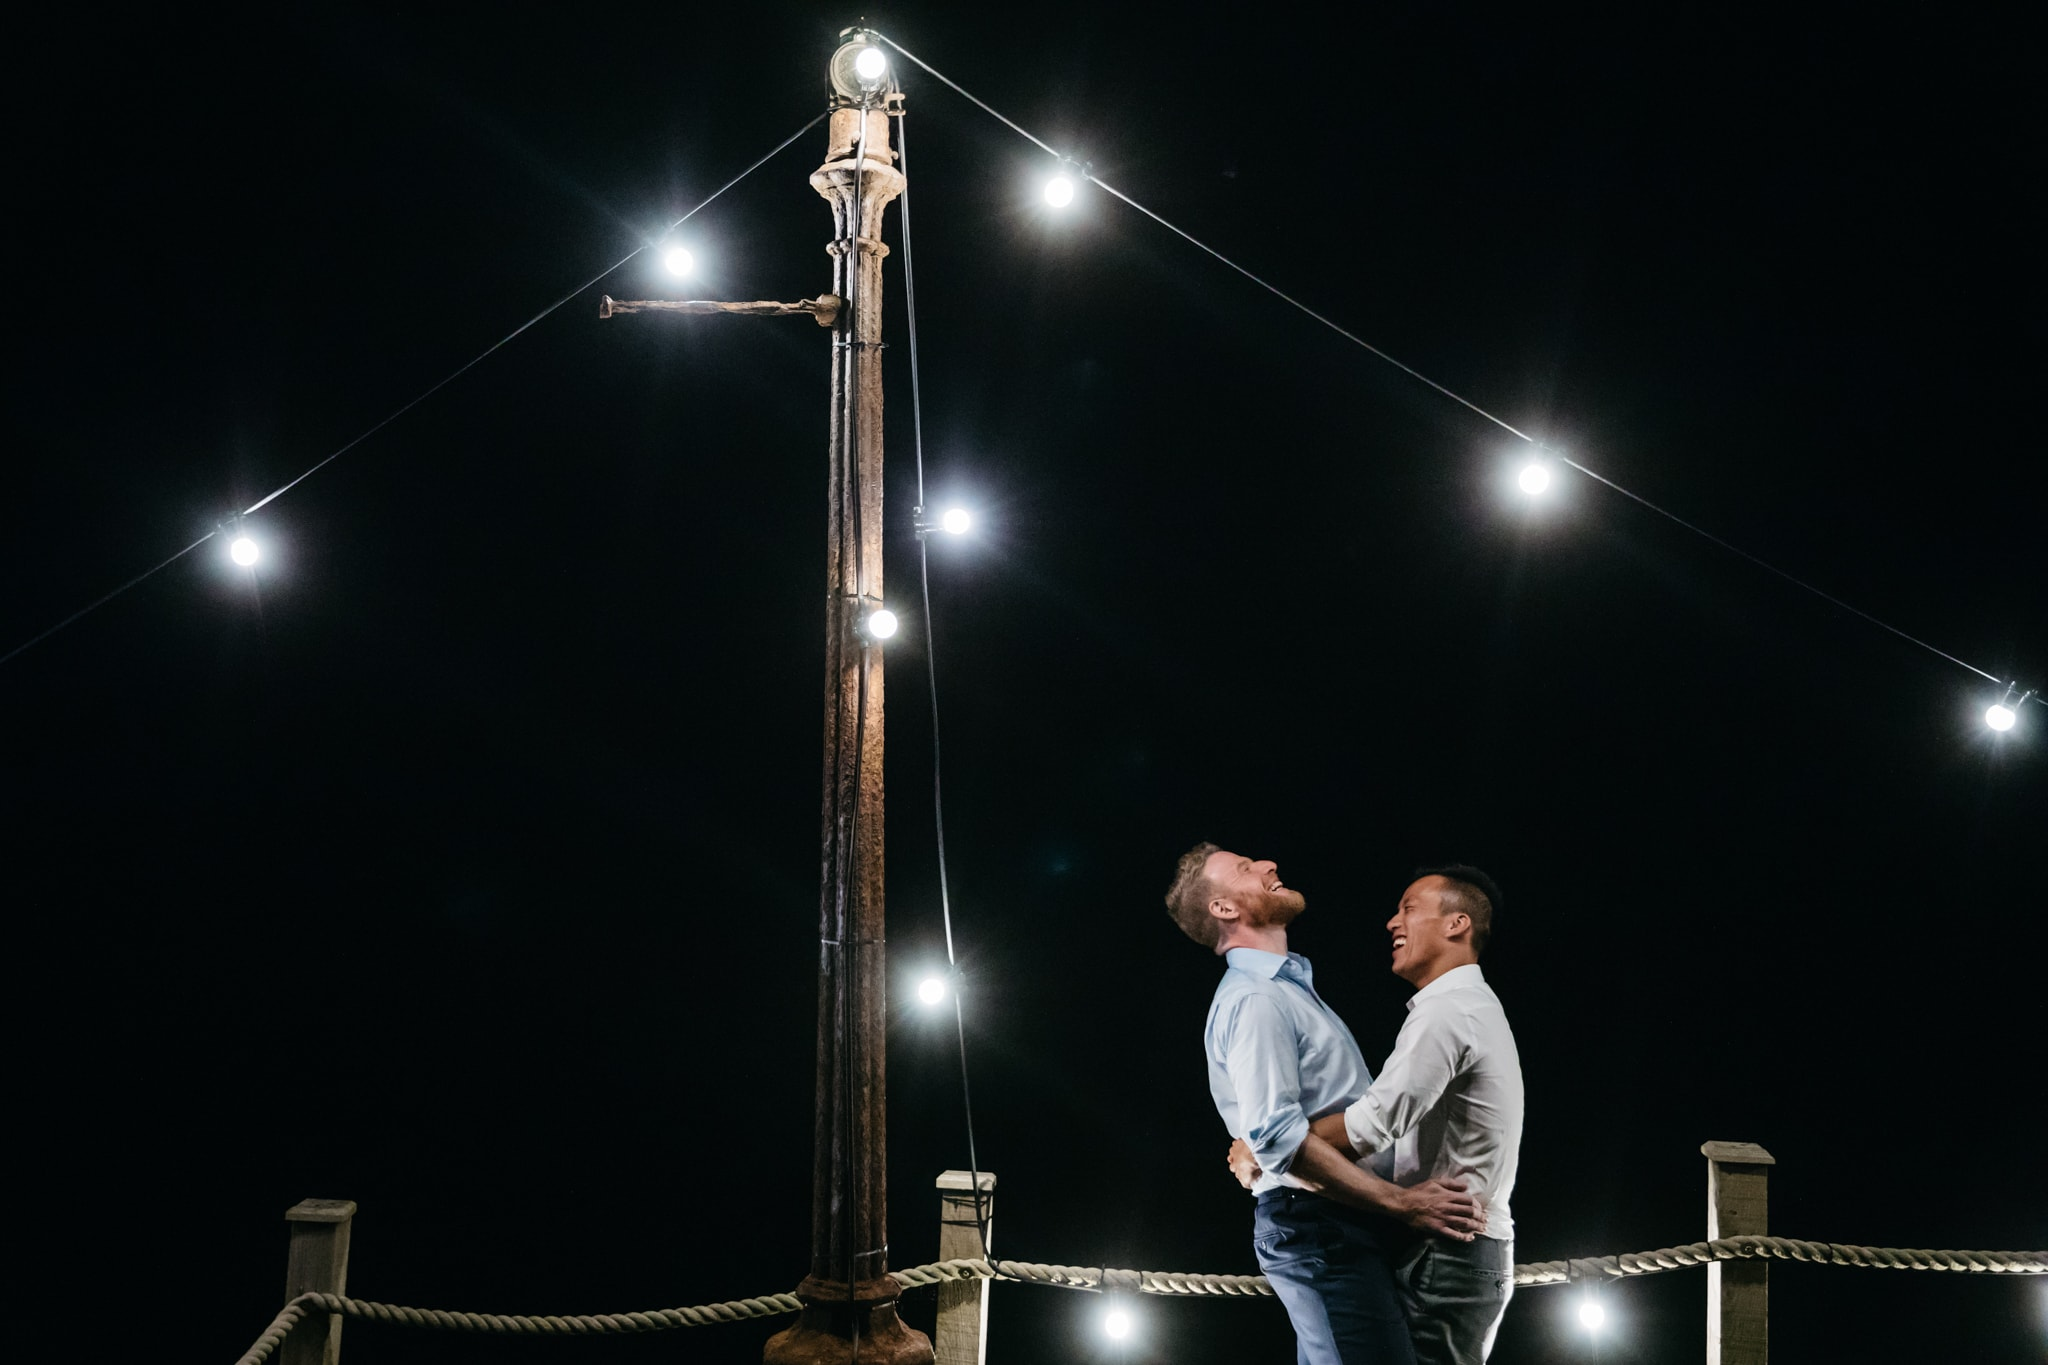 Same sex couple at the end of their wedding under festoon lighting